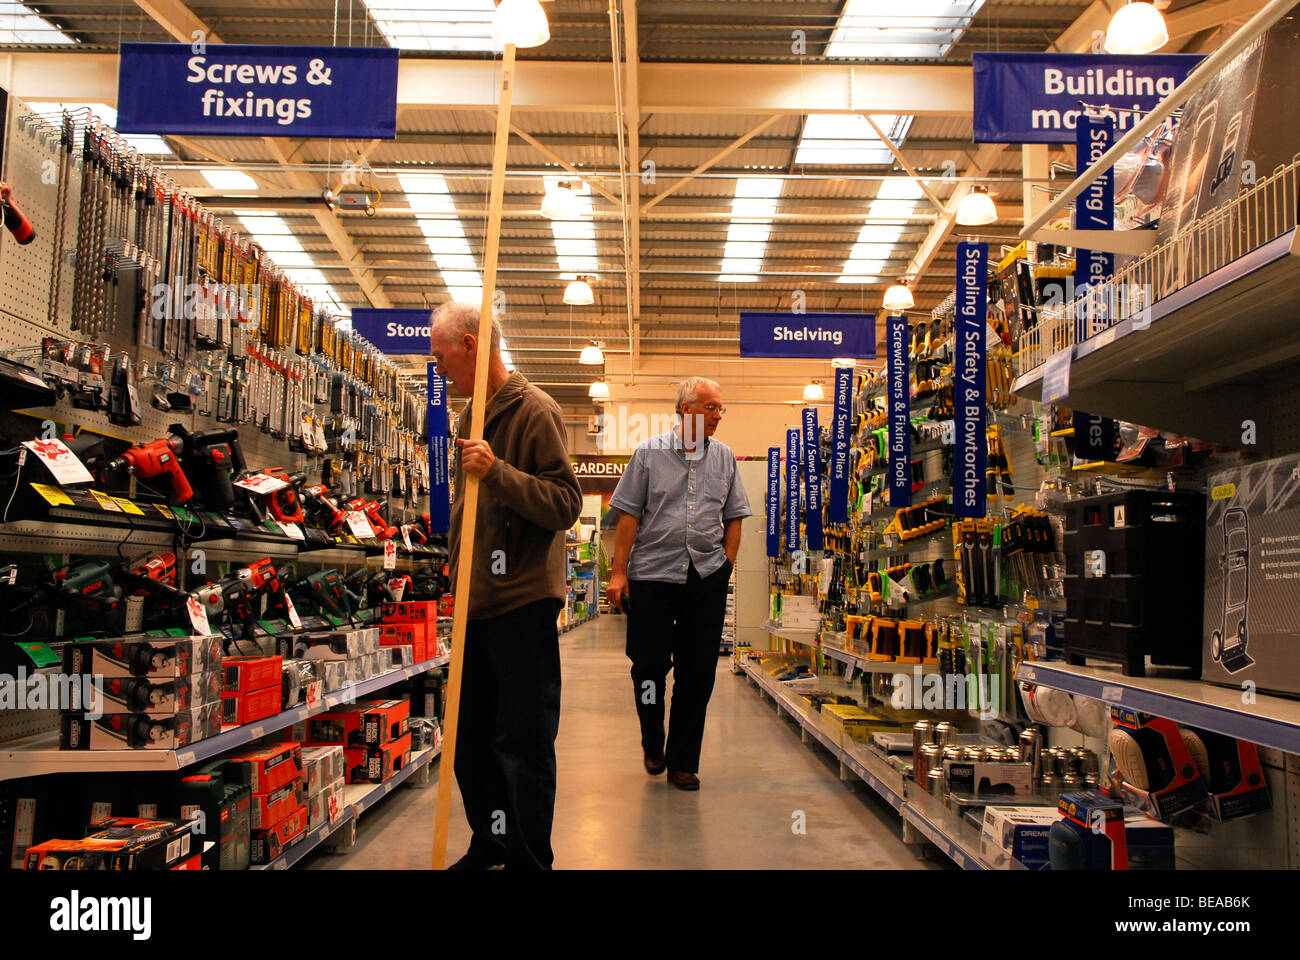 Hardware Store Signs Stock Photos & Hardware Store Signs Stock ...